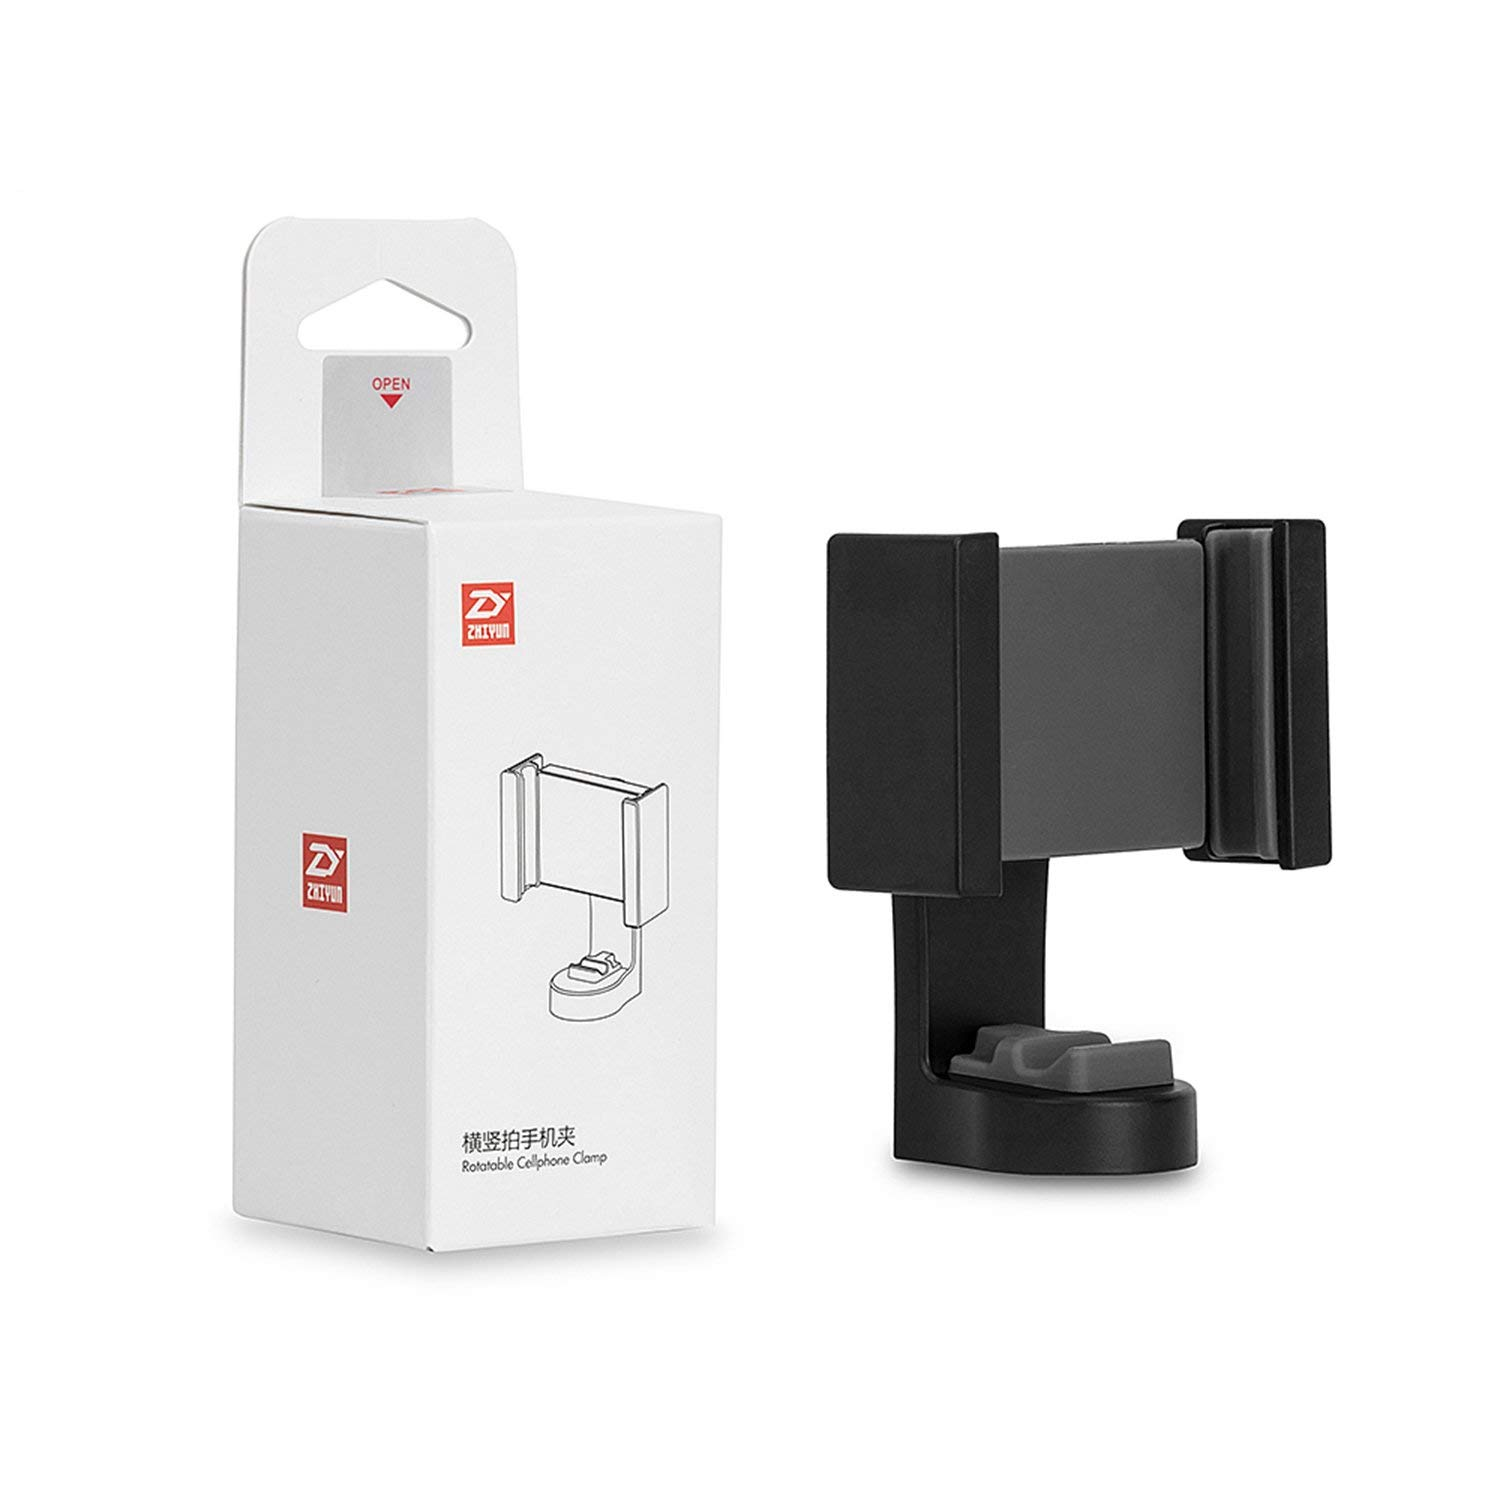 Zhiyun-Tech Phone Clamp